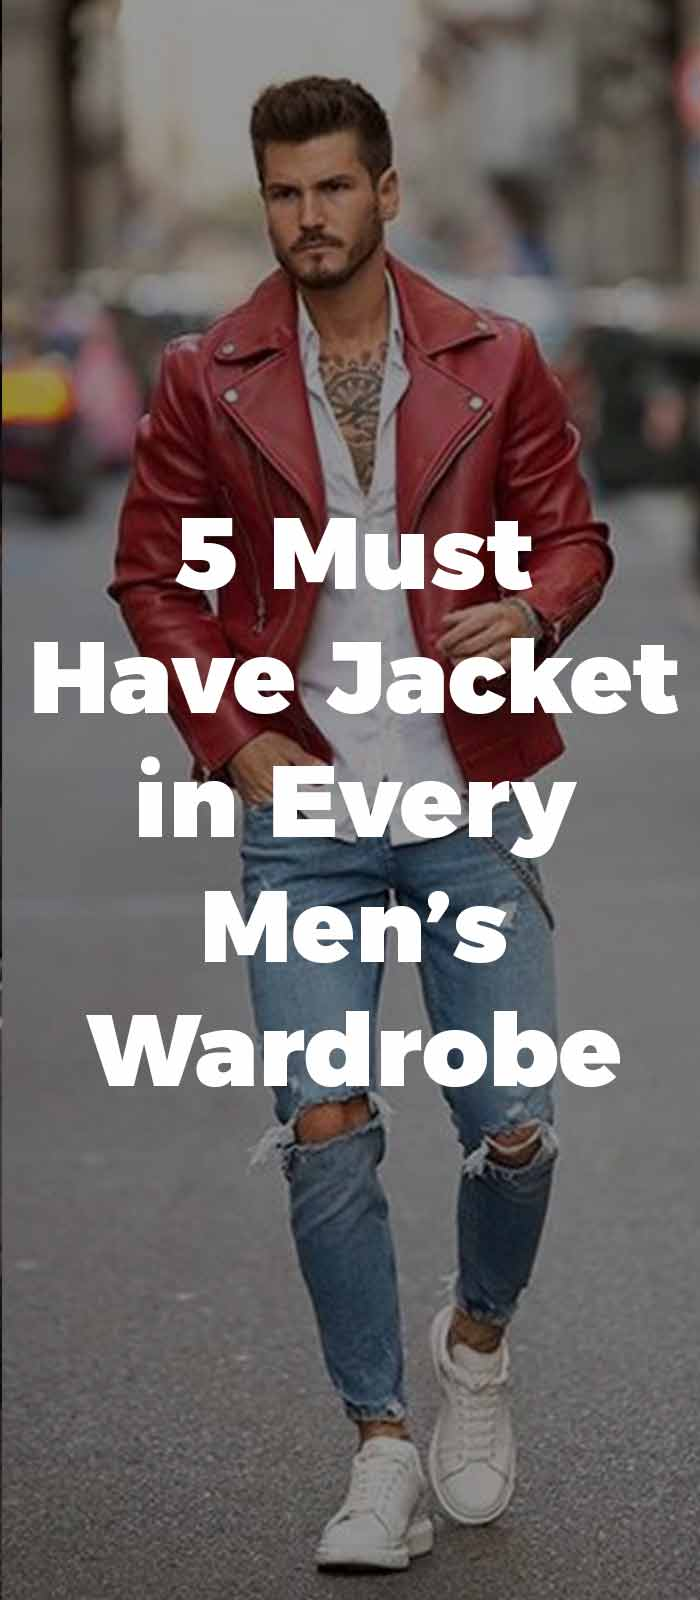 5-Must-Have-Jacket-in-Every-Men's-Wardrobe